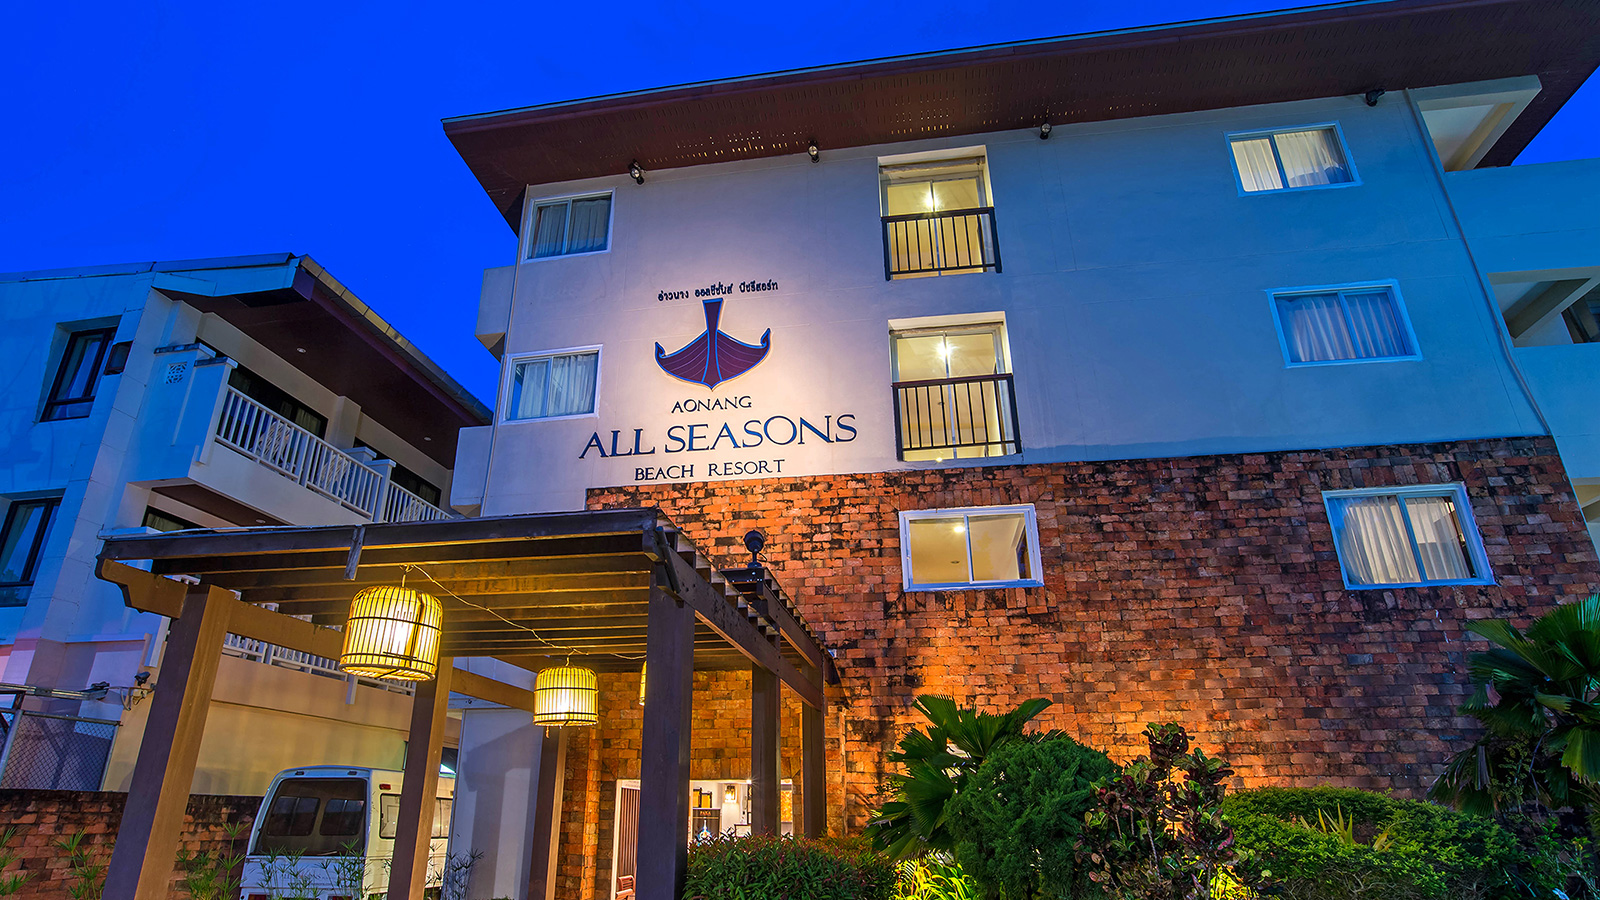 Aonang All Seasons Beach Resor